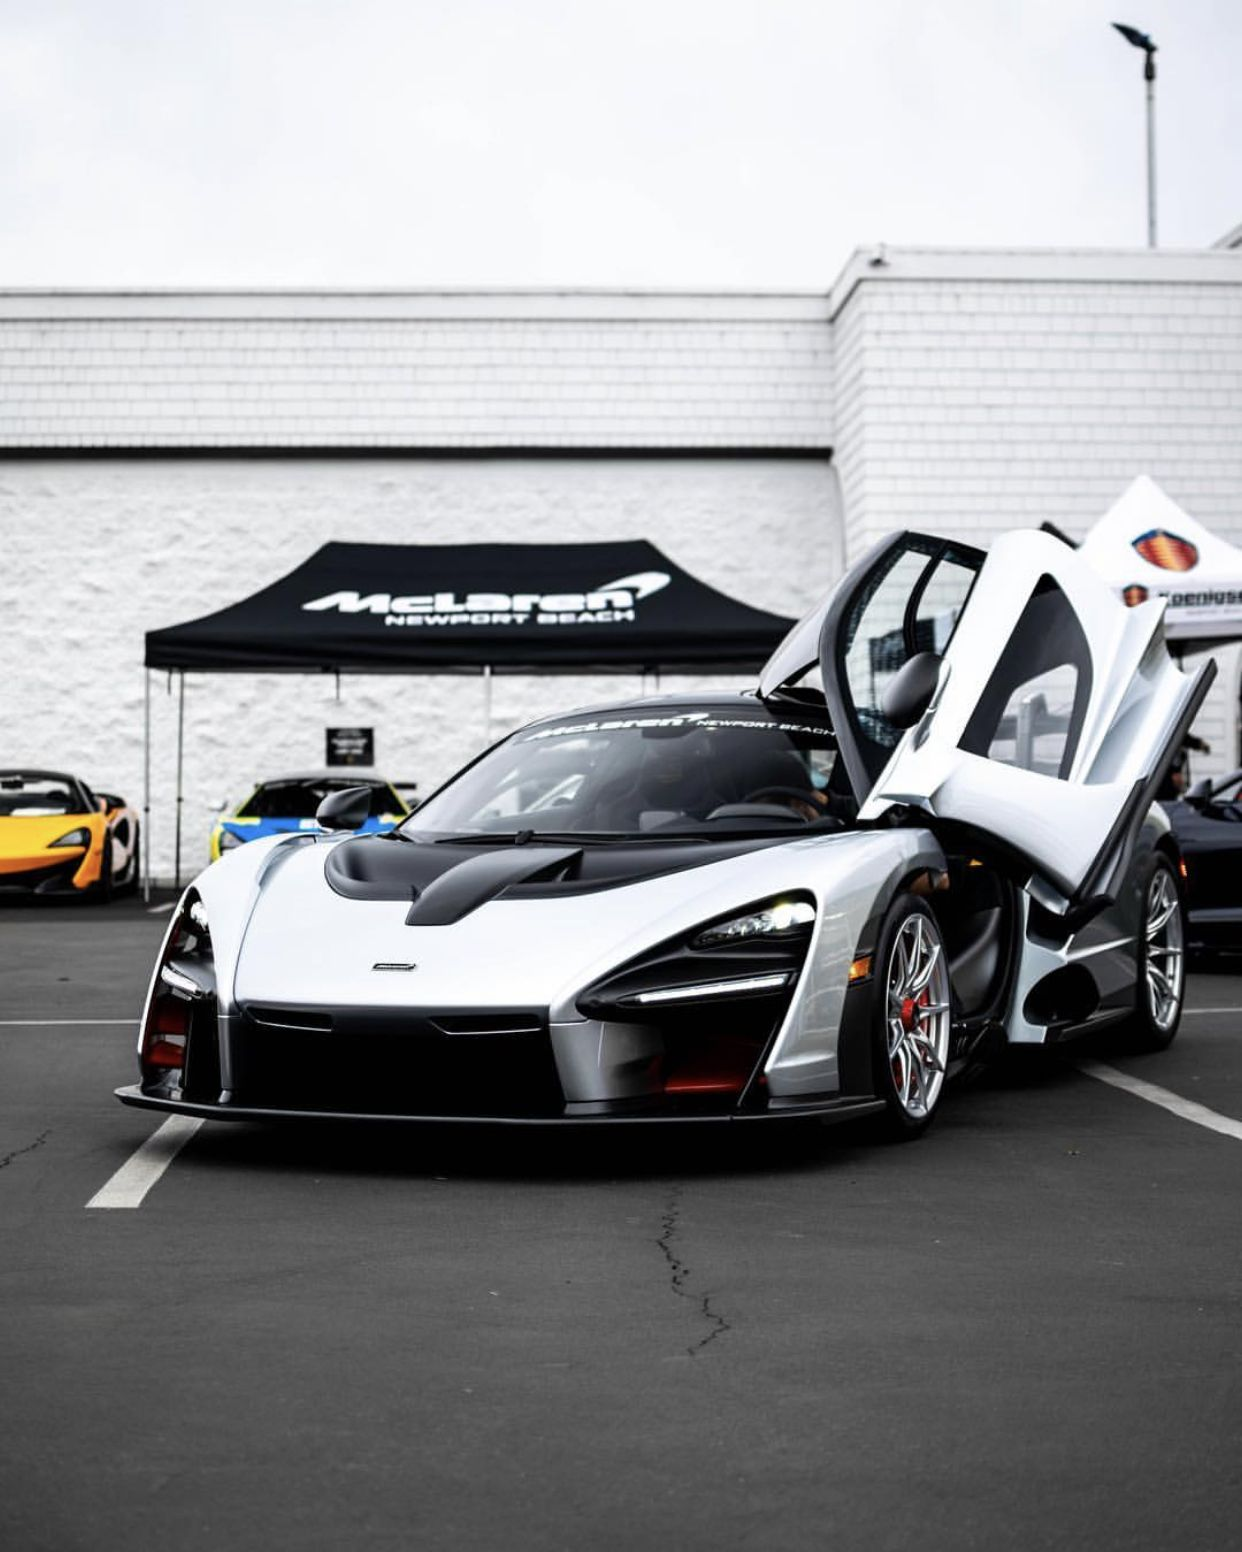 McLaren Senna Painted In Liquid Silver W/ Red Accents And